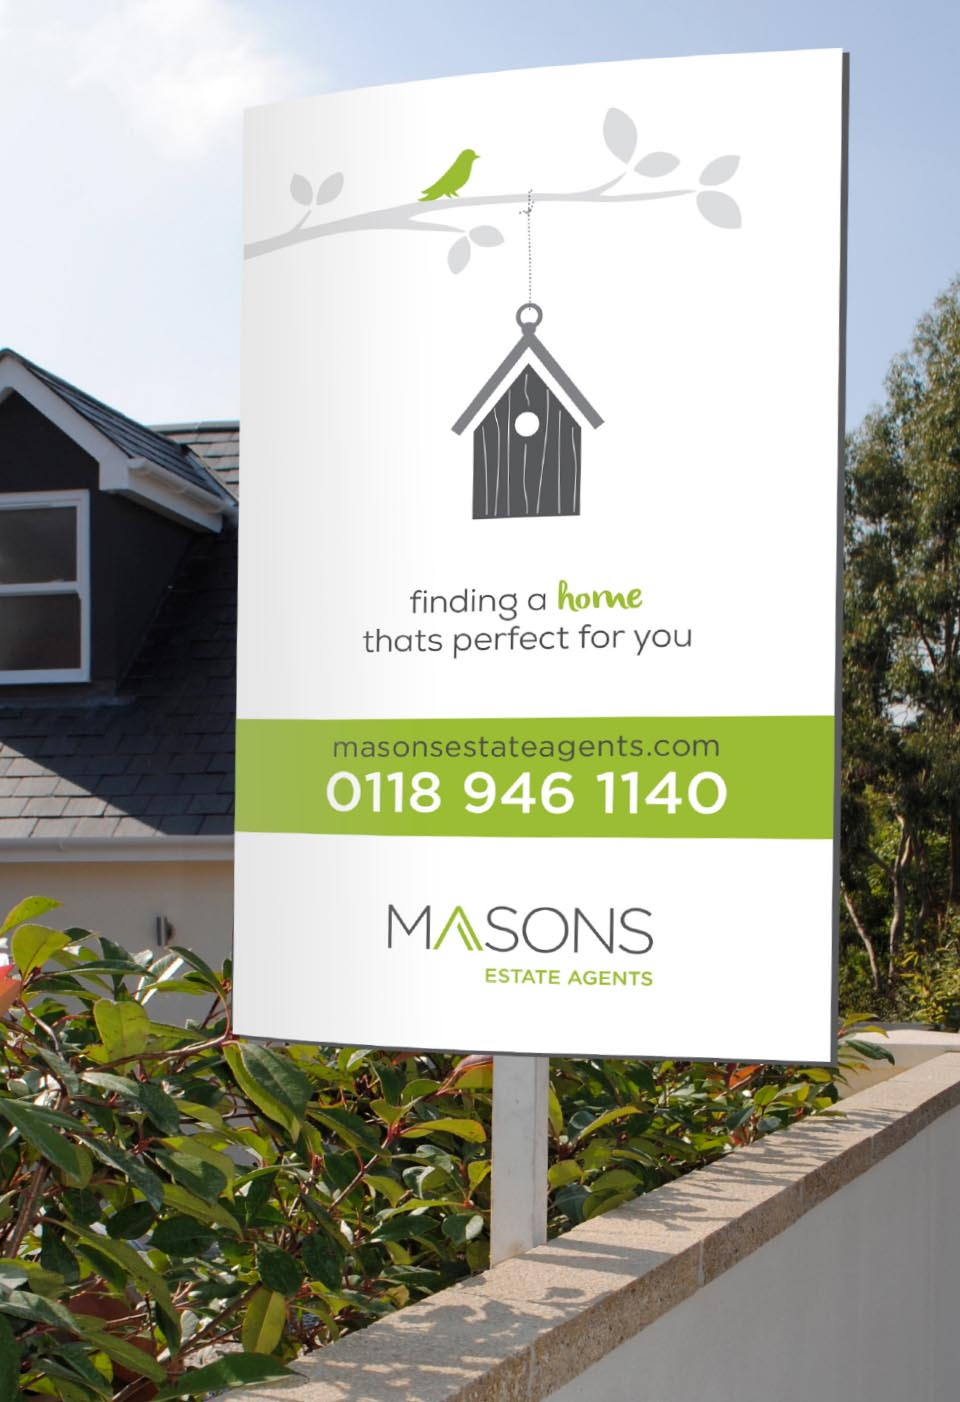 Masons-Estate-Agents-Advertising-Campaign-Reading-Sign